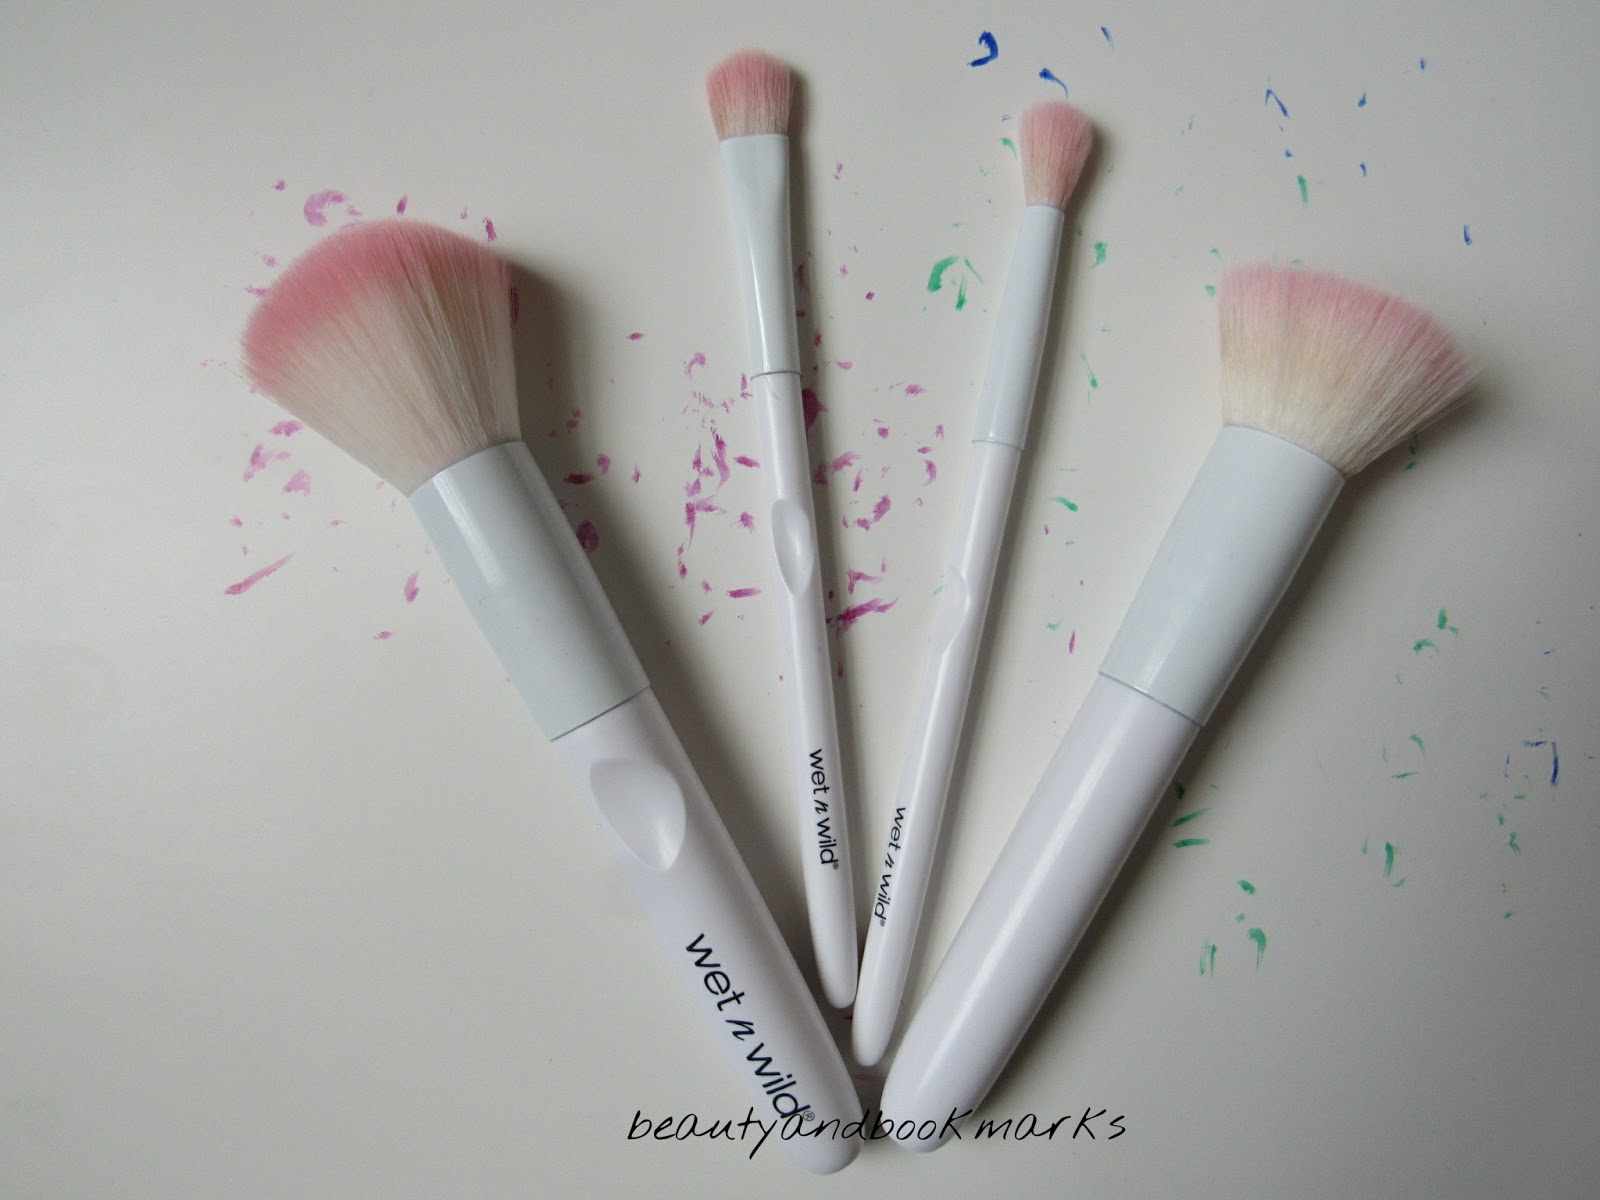 Wet N Wild Makeup Brushes Review